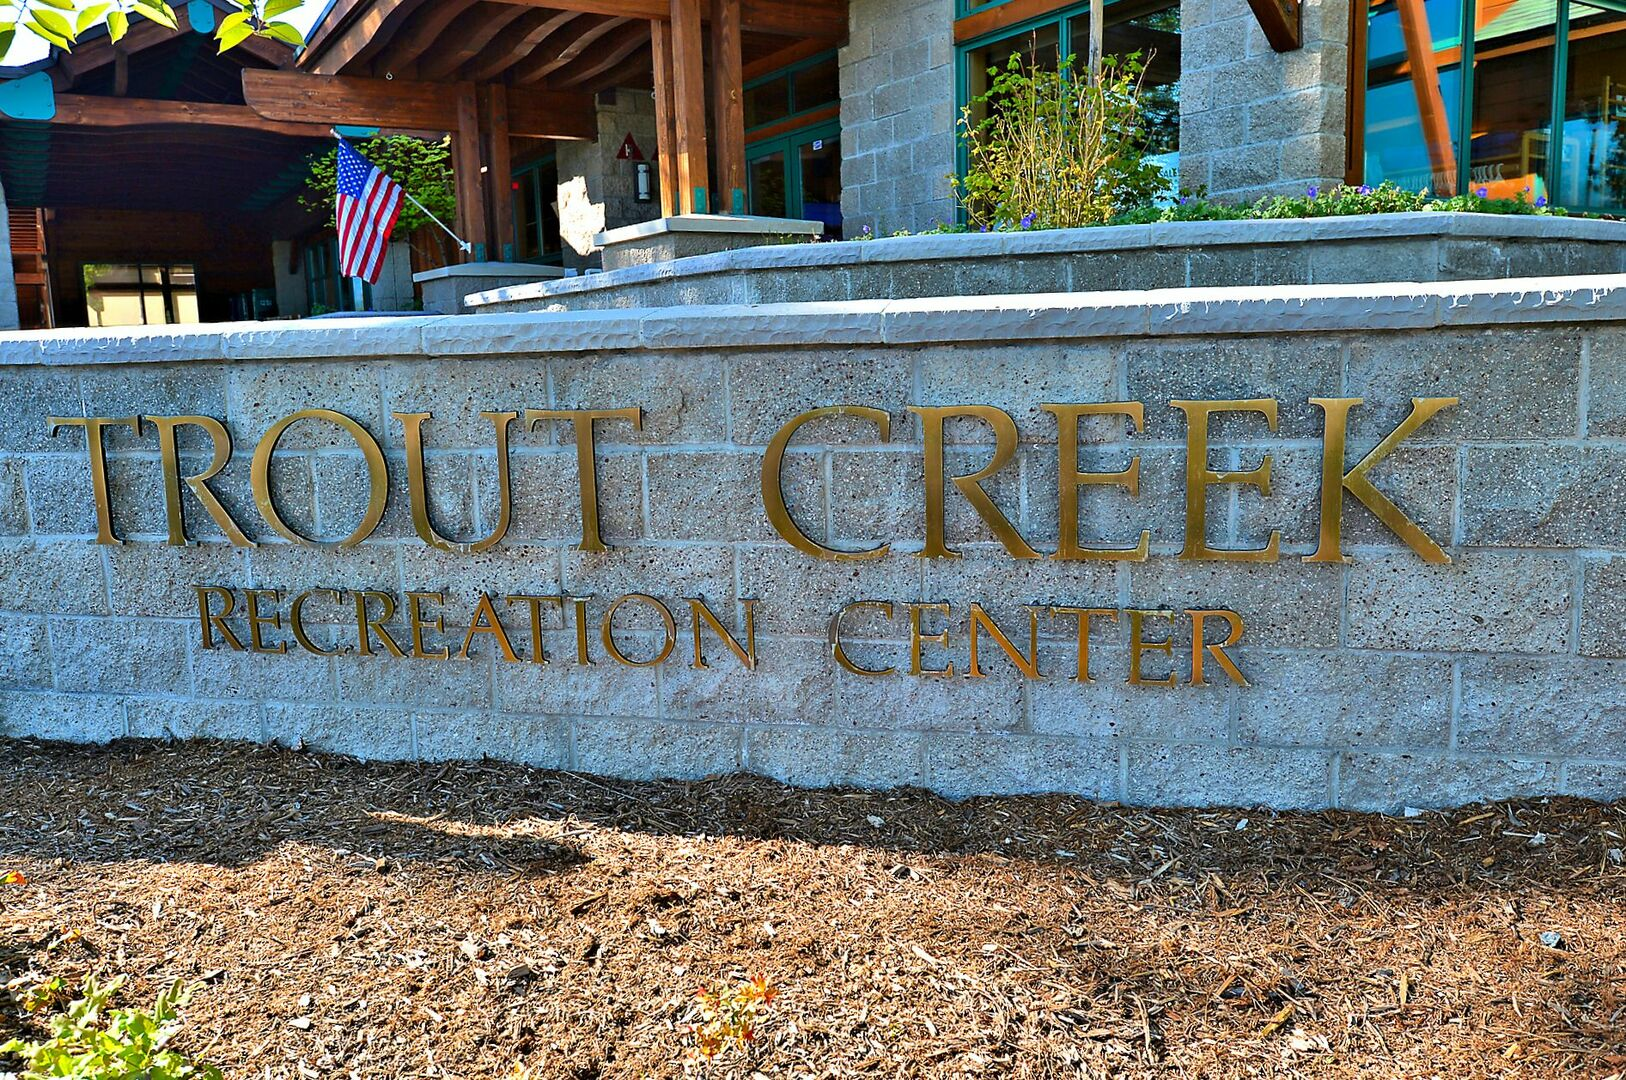 Sign at Trout Creek Recreation Center's Entrance